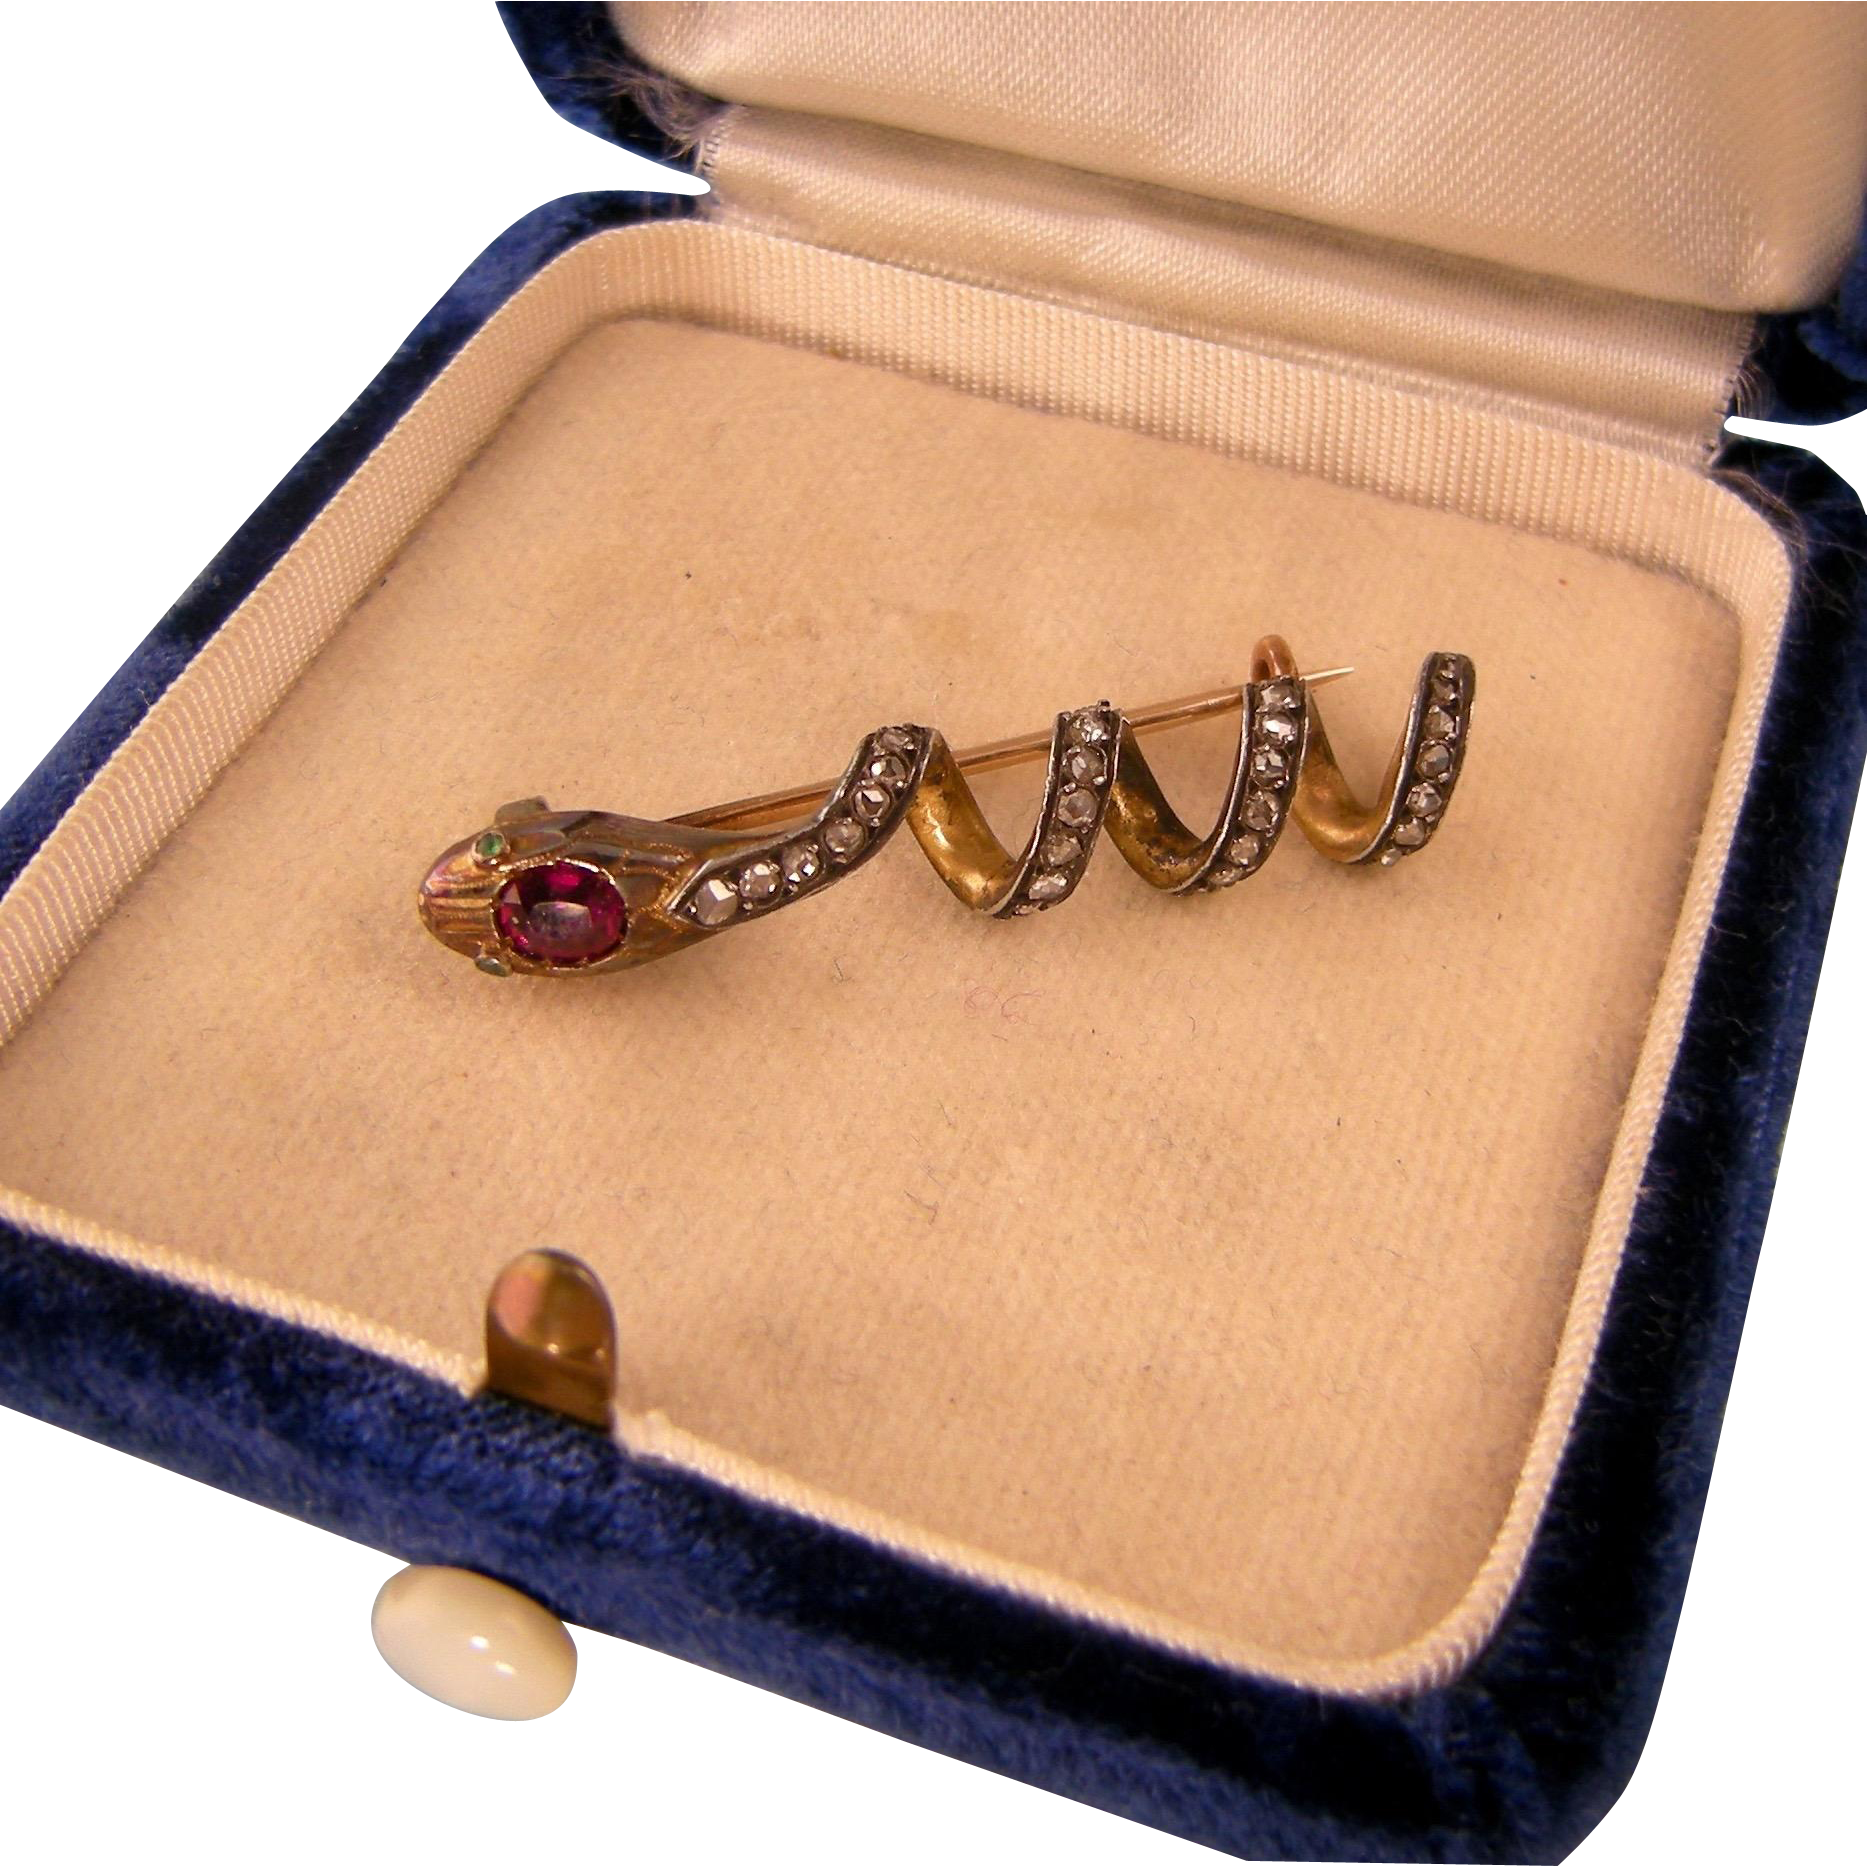 Antique Victorian 14K Gold Snake Pin Brooch with Diamonds, Ruby, and Emeralds